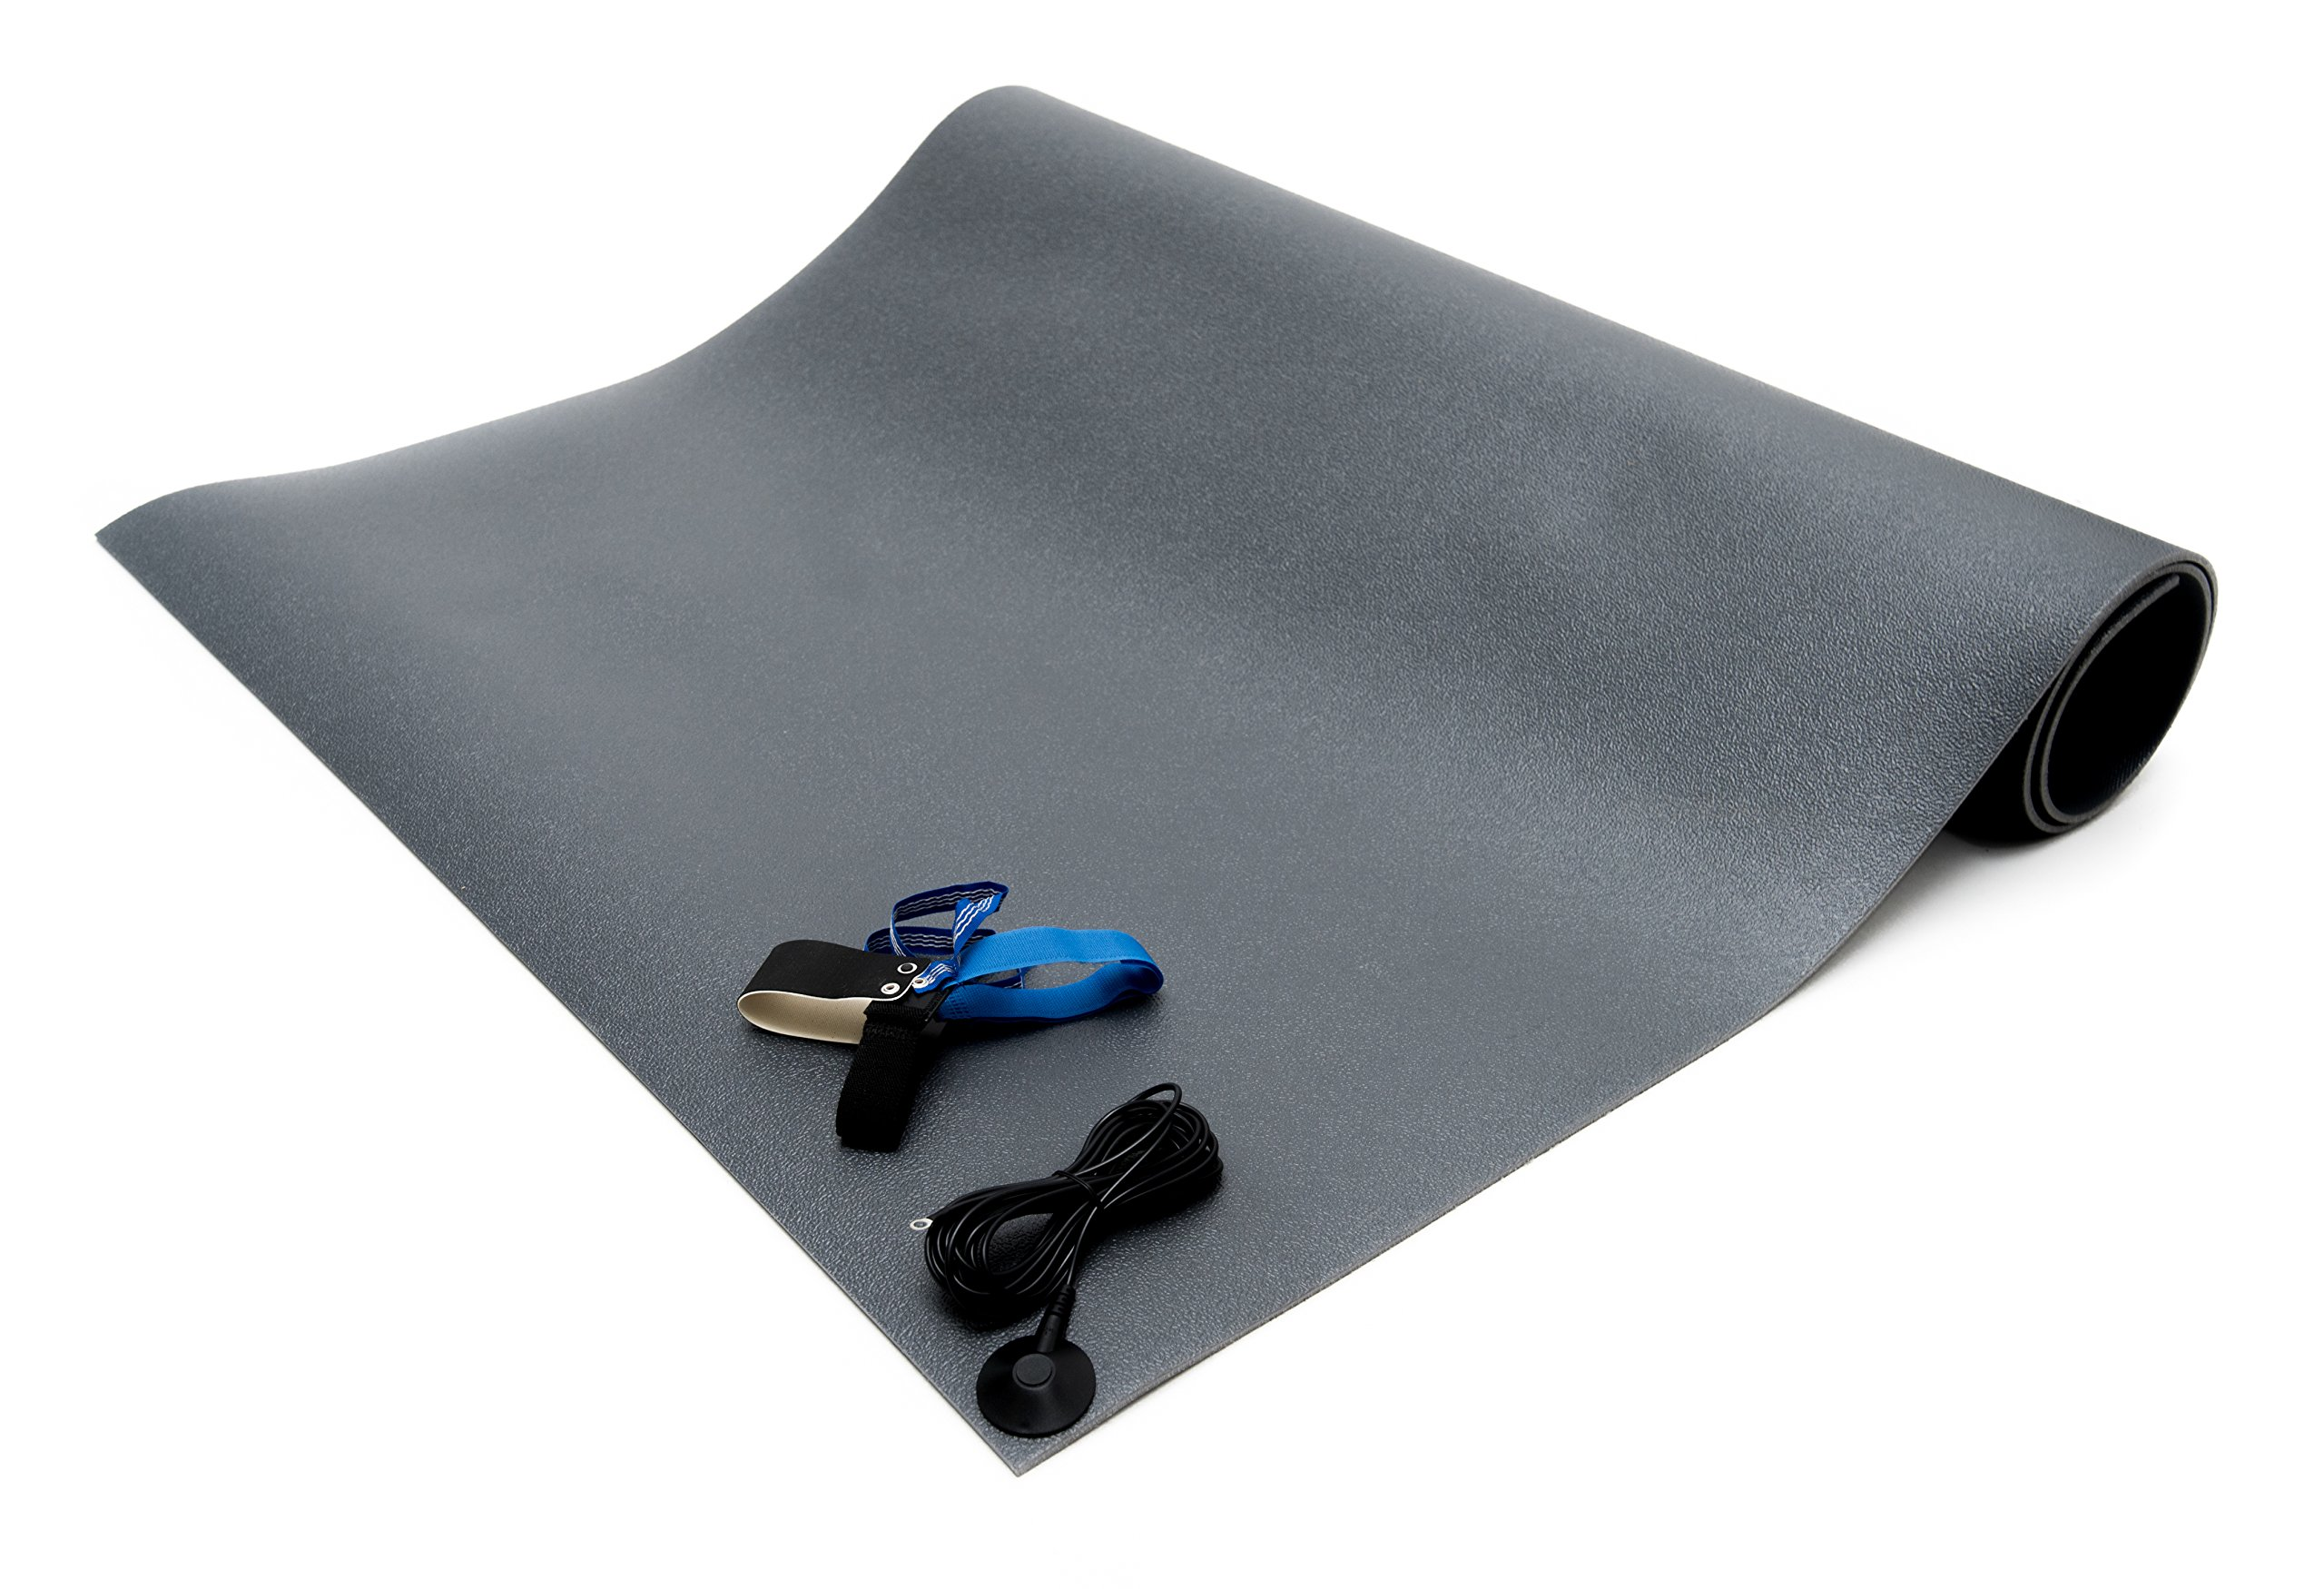 Bertech ESD Chair Mat Kit with a Heel Grounder and Grounding Cord, 3' Wide x 6' Long x 0.190'' Thick, Gray by Bertech (Image #1)